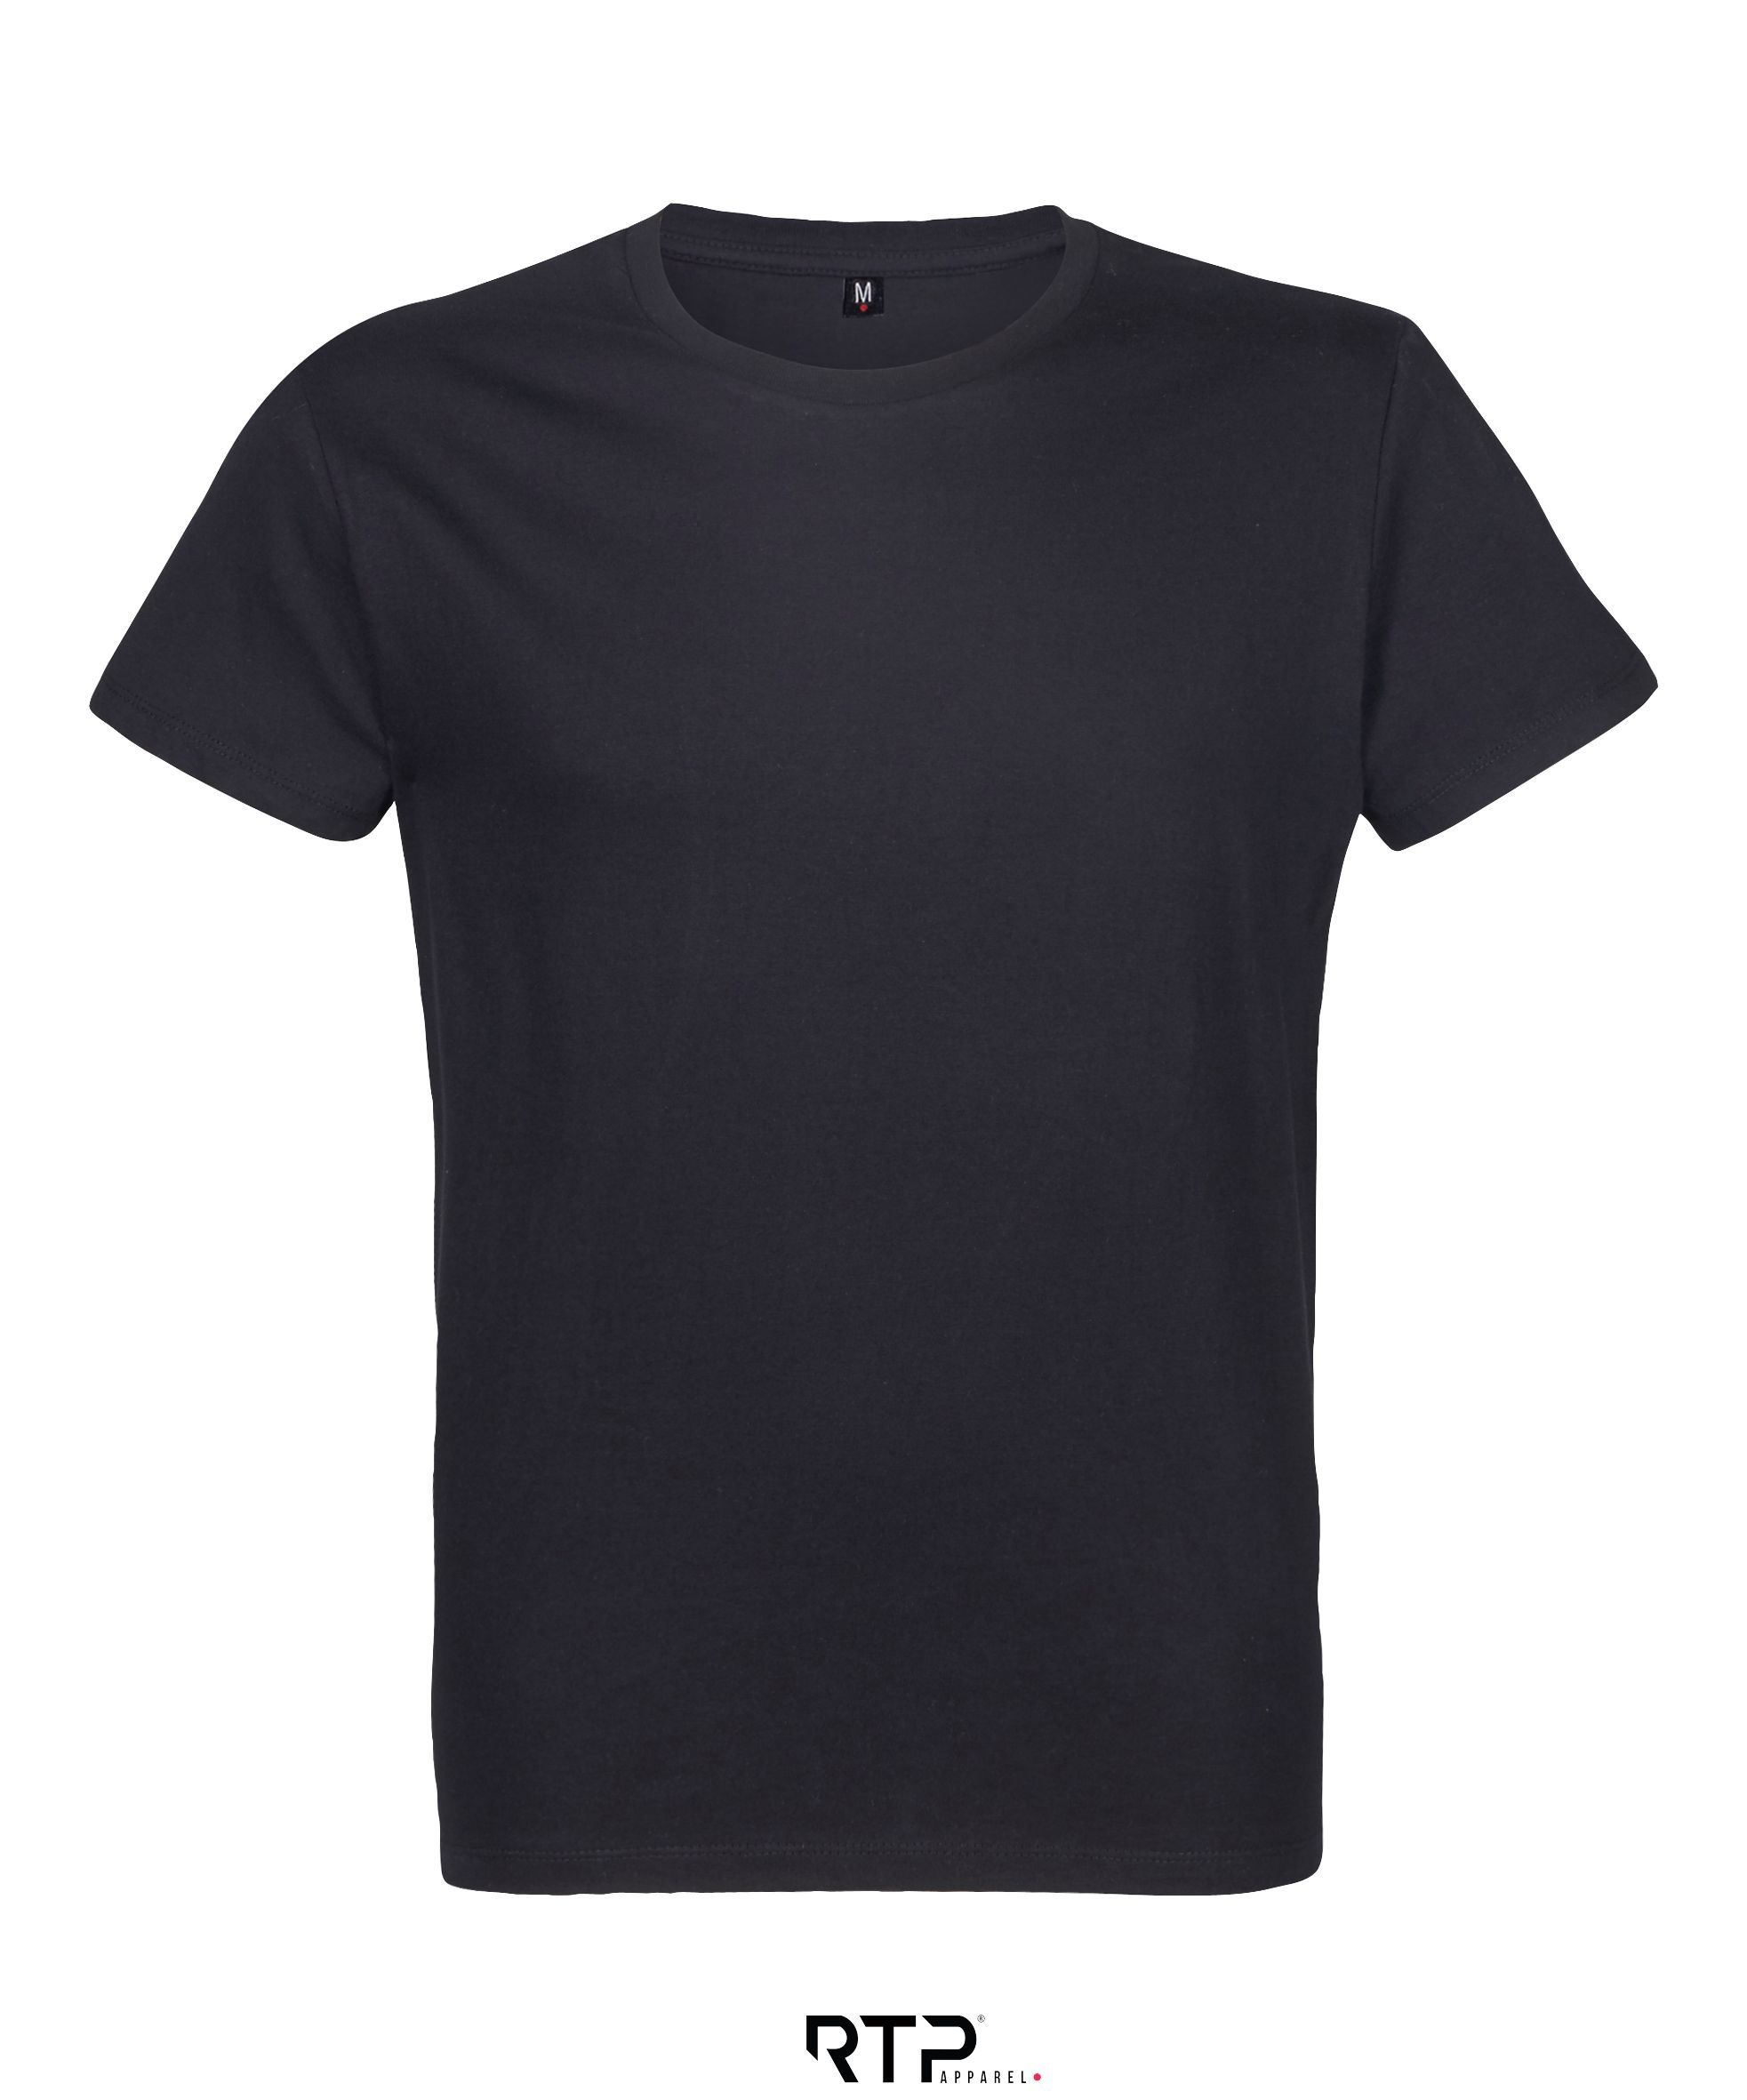 Tee-shirt homme manches courtes - 1-1452-3